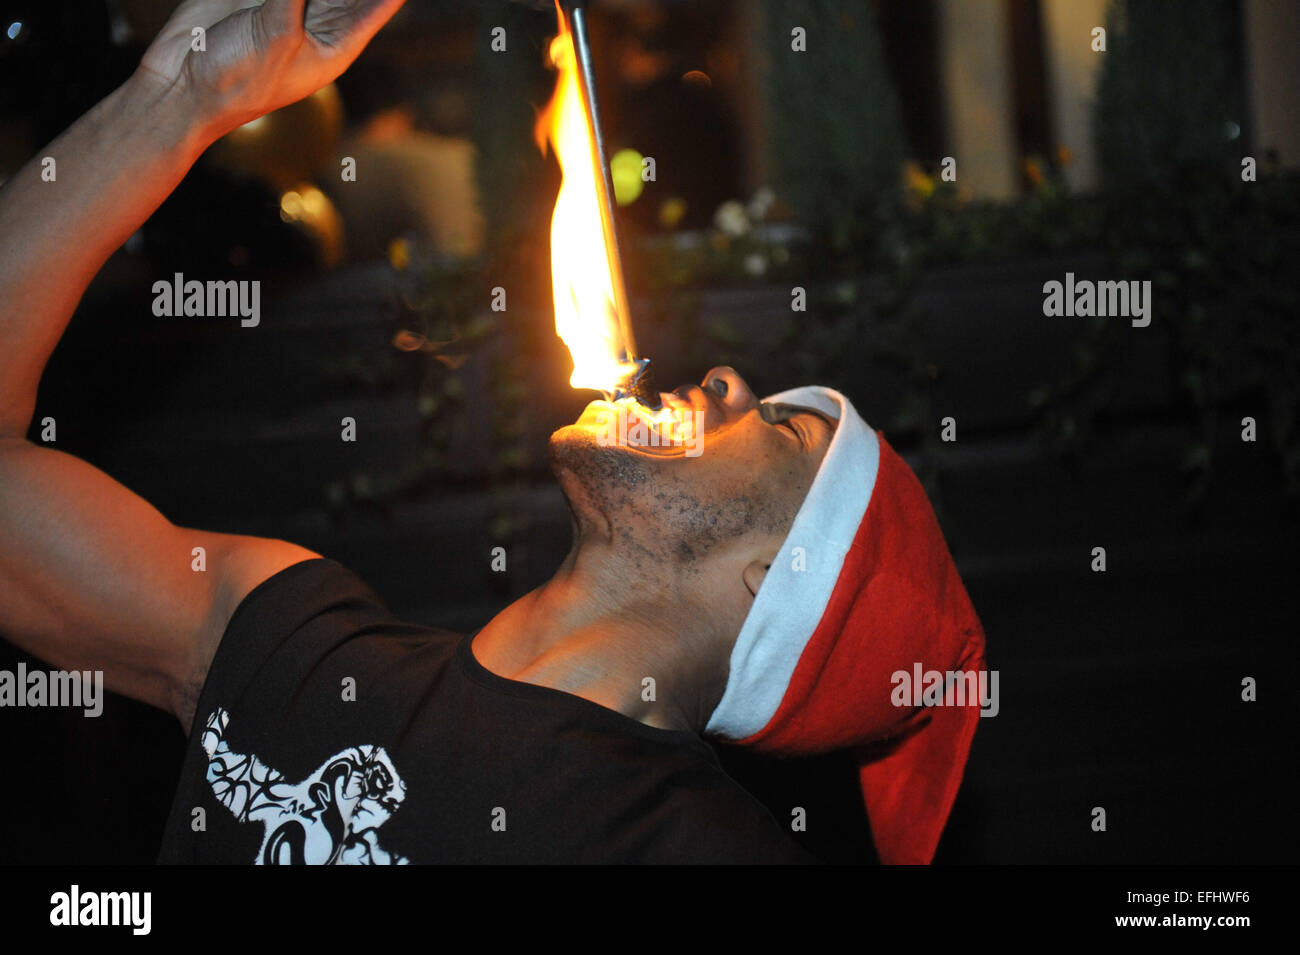 Fire eater entertainment at an opening party night. - Stock Image